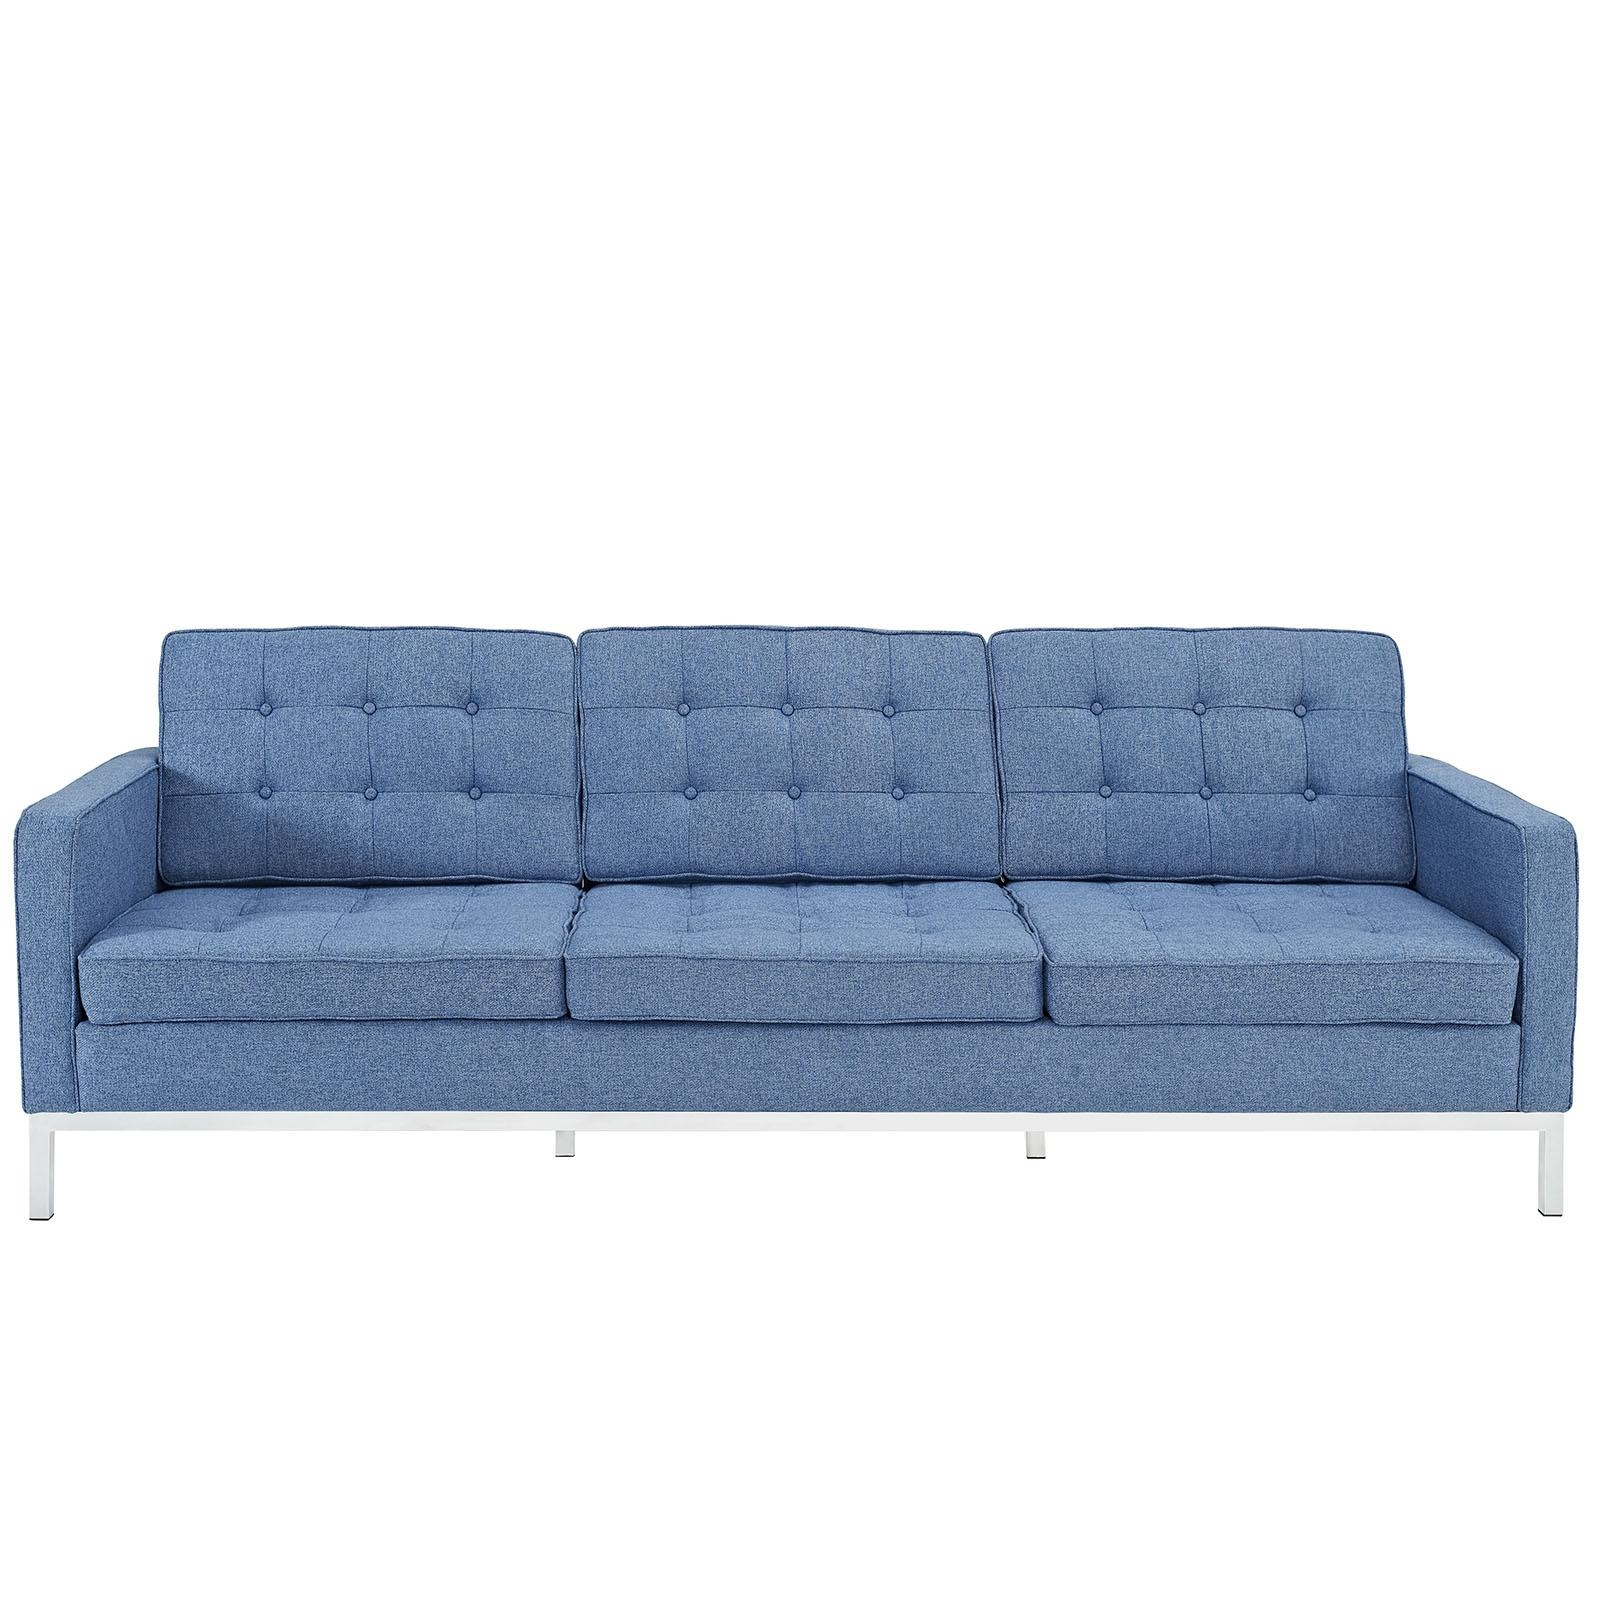 Florence Knoll Style Sofa Couch – Wool Regarding Florence Knoll Style Sofas (View 19 of 20)